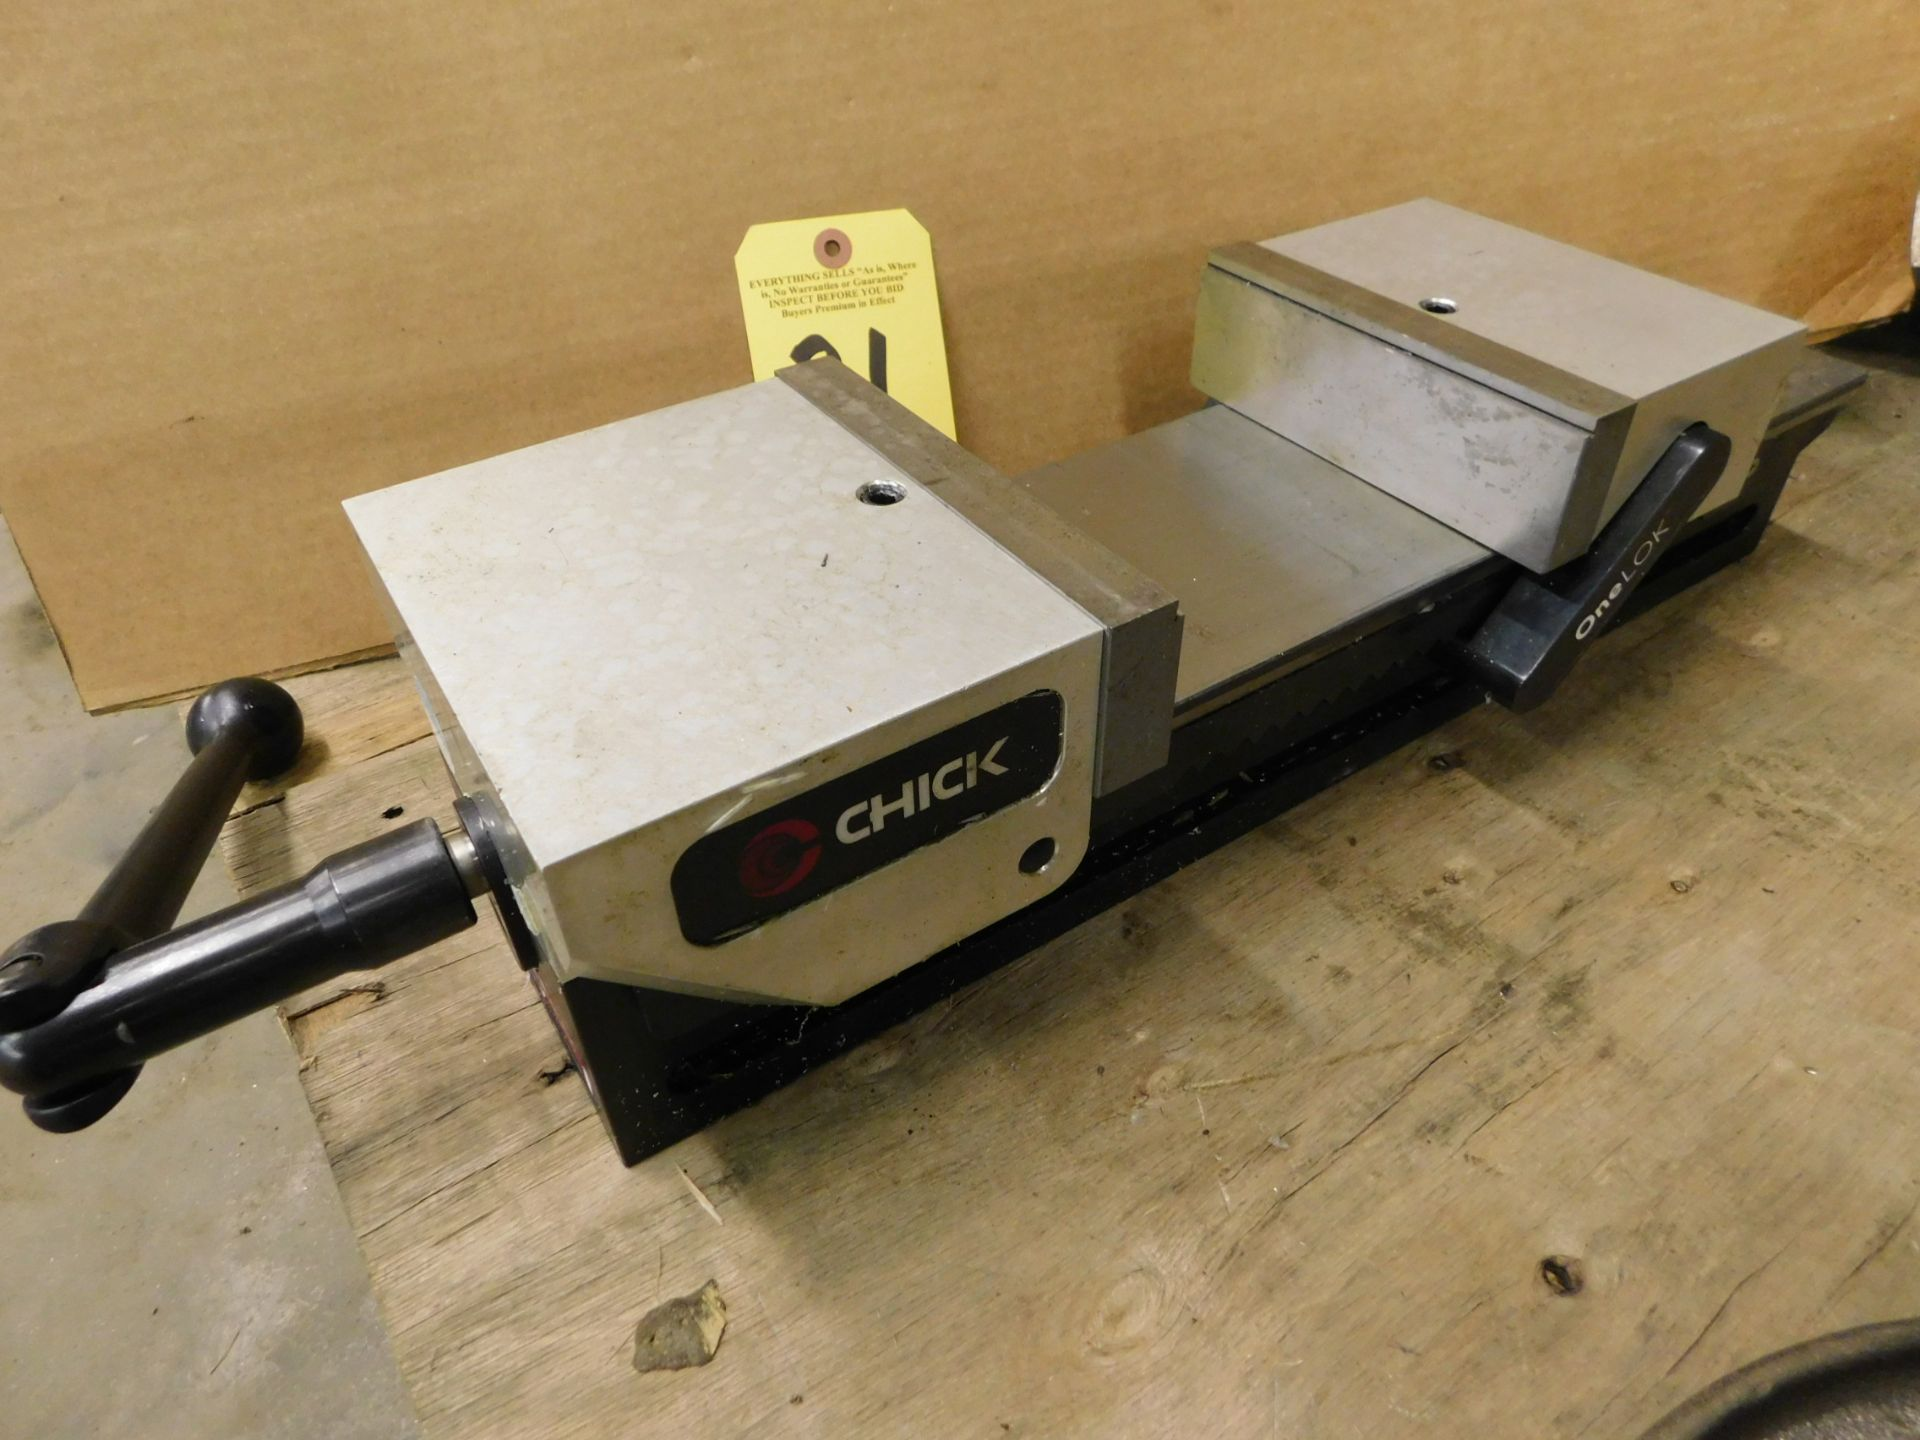 """Lot 21 - Chick One Lok 6"""" Mill Vise, Lot Location: 301 Poor Dr., Warsaw, IN, 46580"""